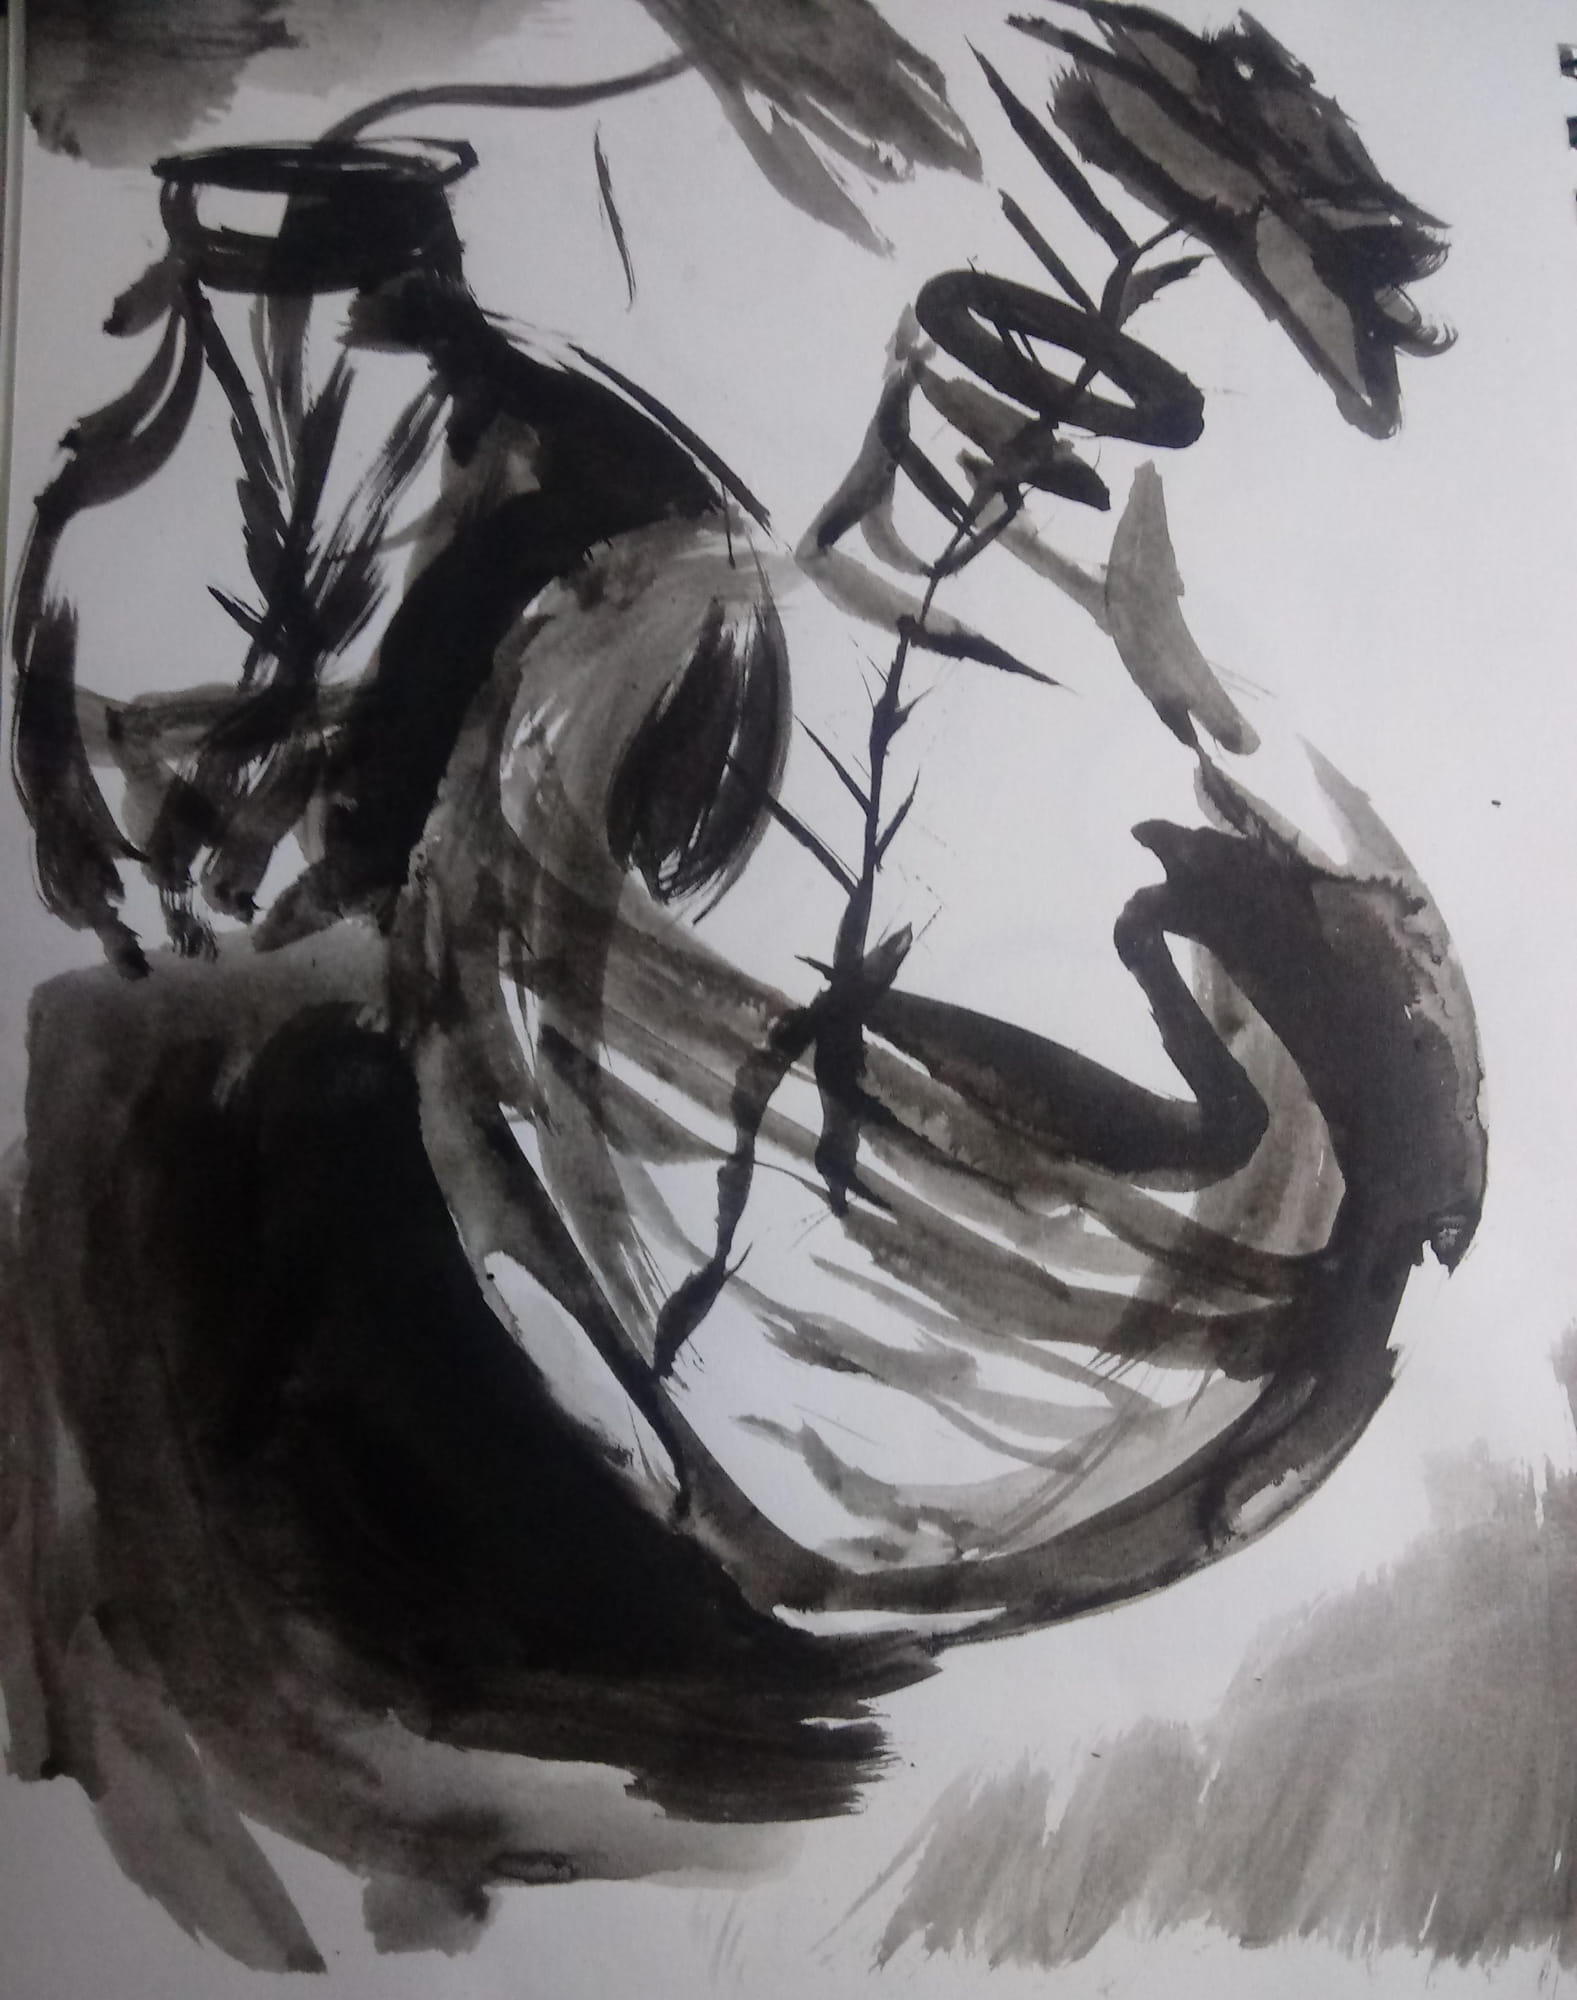 A ink painting of a flower and its shadow, a work by Cherysh White